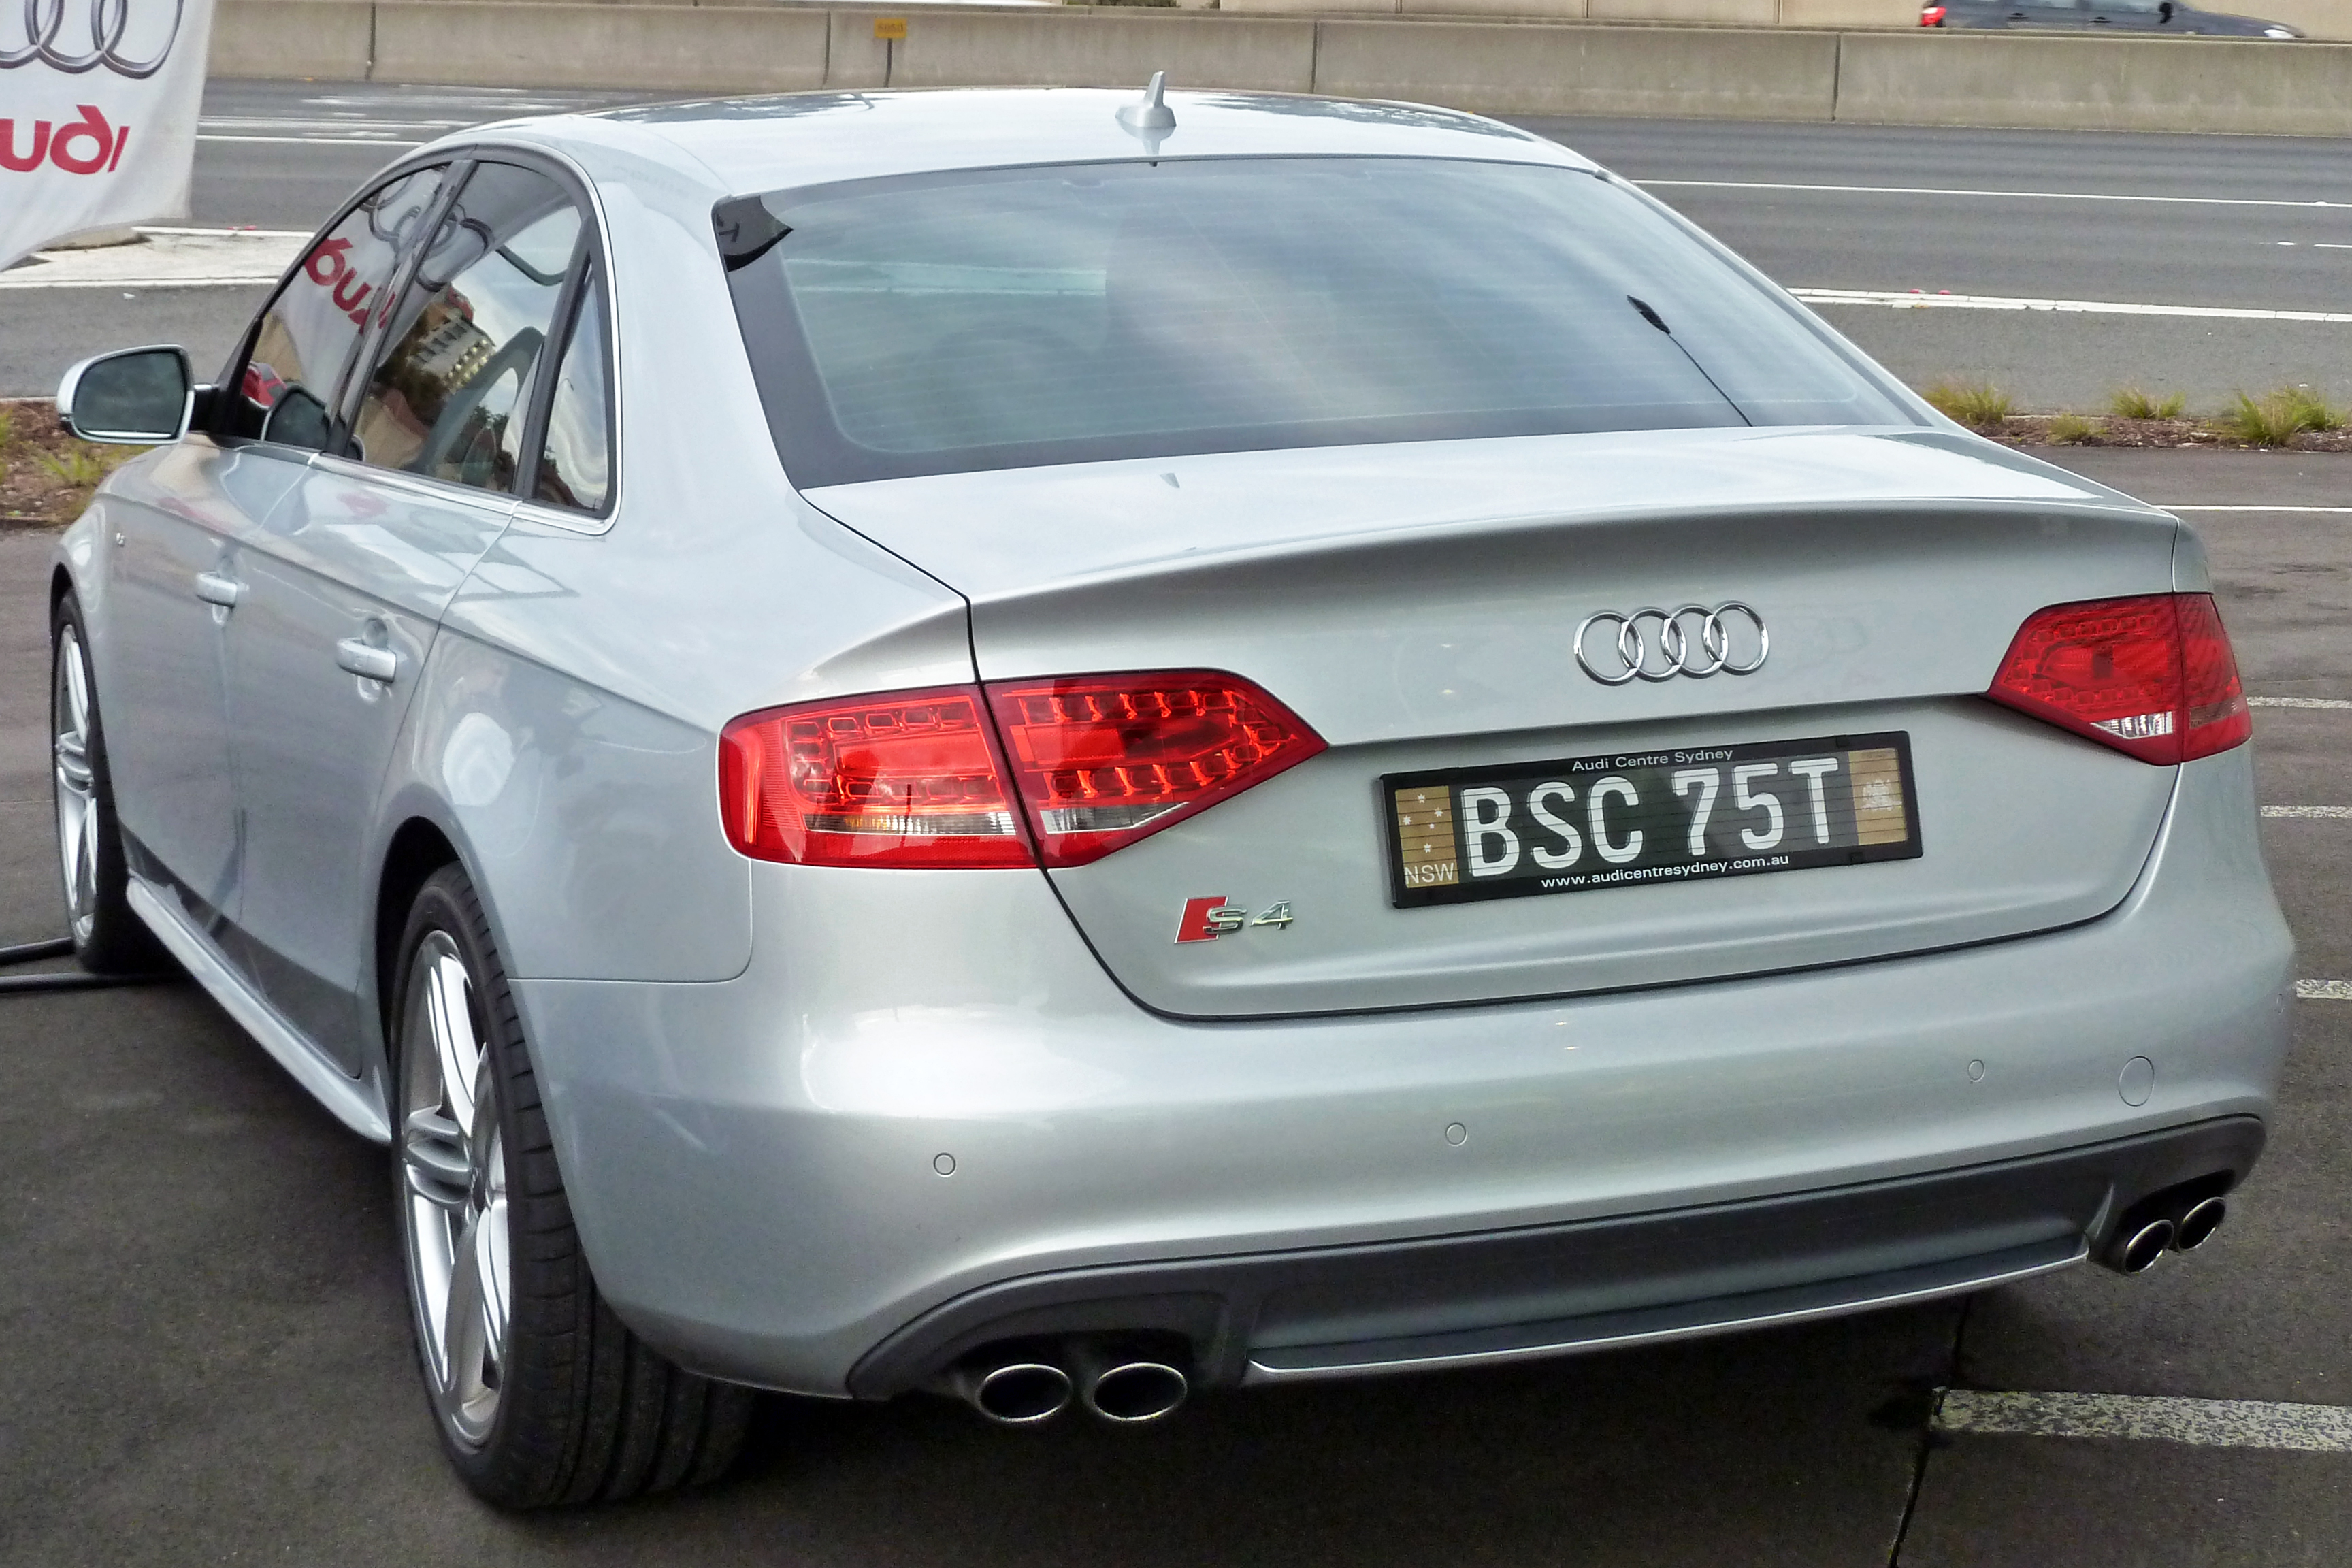 file:2009-2010 audi s4 (b8) sedan 02 - wikimedia commons